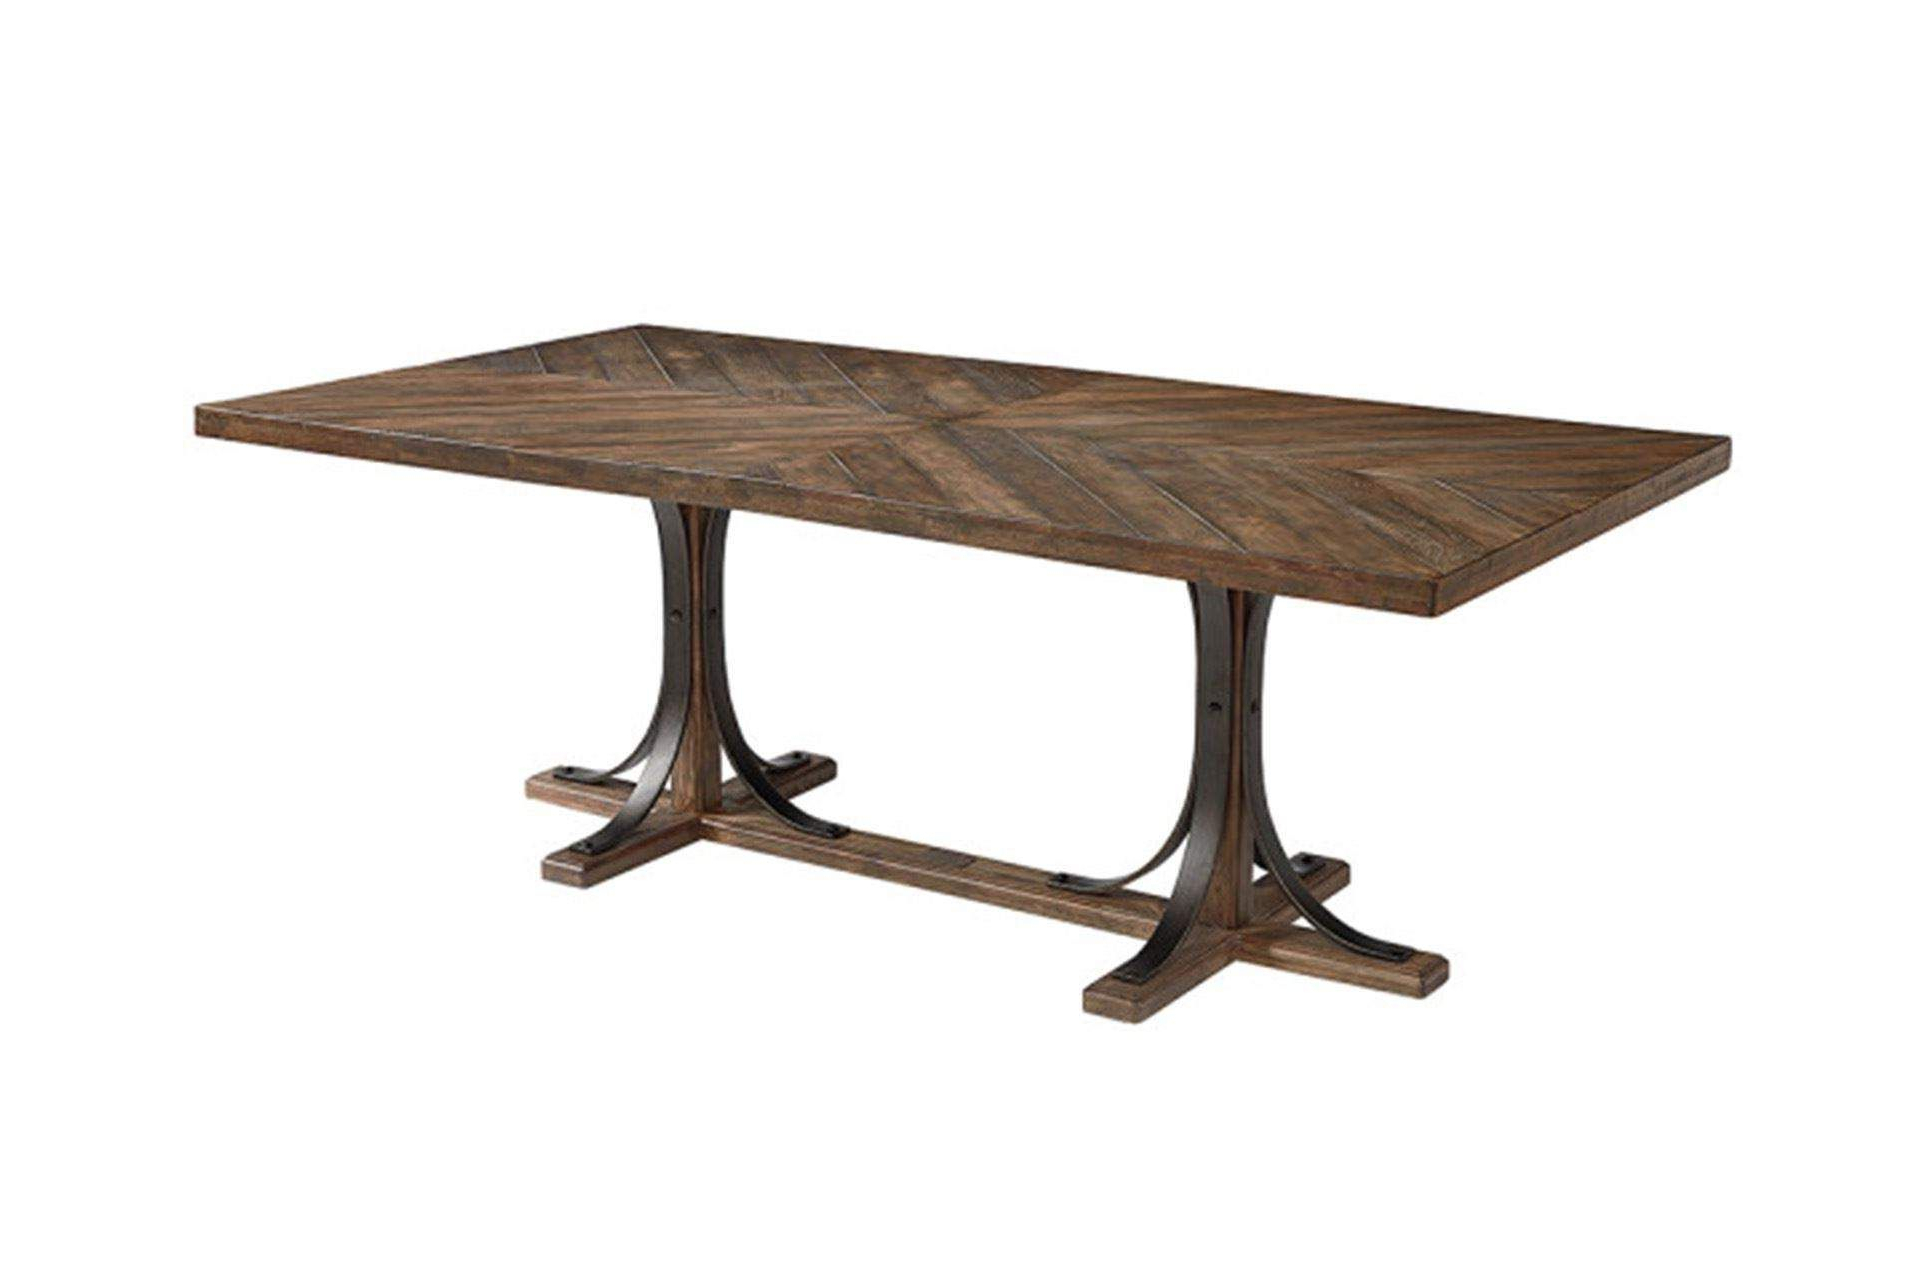 Magnolia Home Paradigm Sofa Chairs By Joanna Gaines Regarding Fashionable Magnolia Home Shop Floor Dining Table With Iron Trestlejoanna (View 11 of 20)